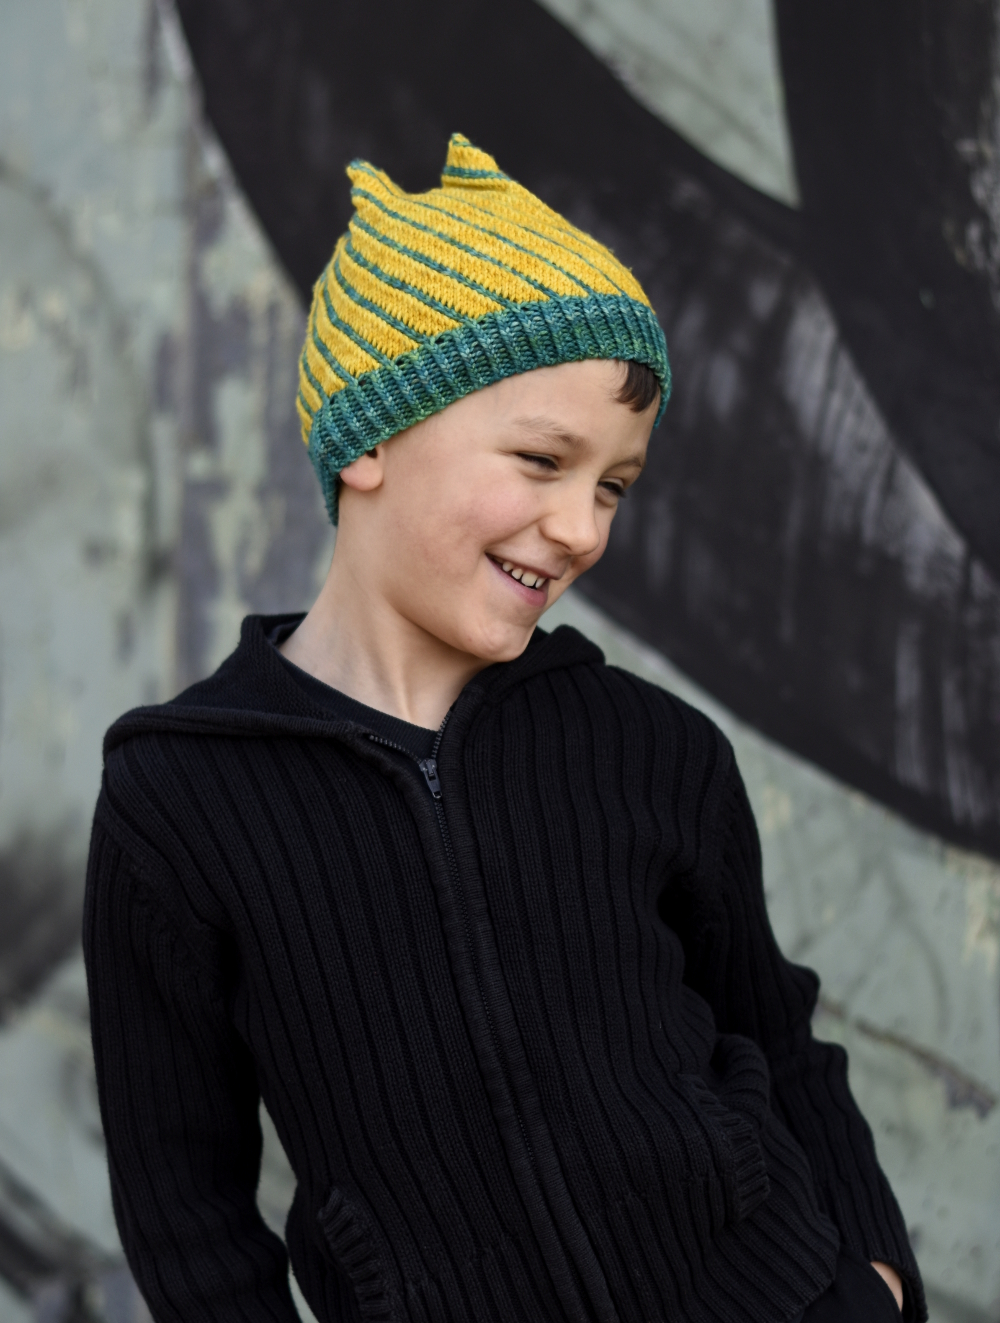 Torsione bia knit colourwork Hat knitting pattern